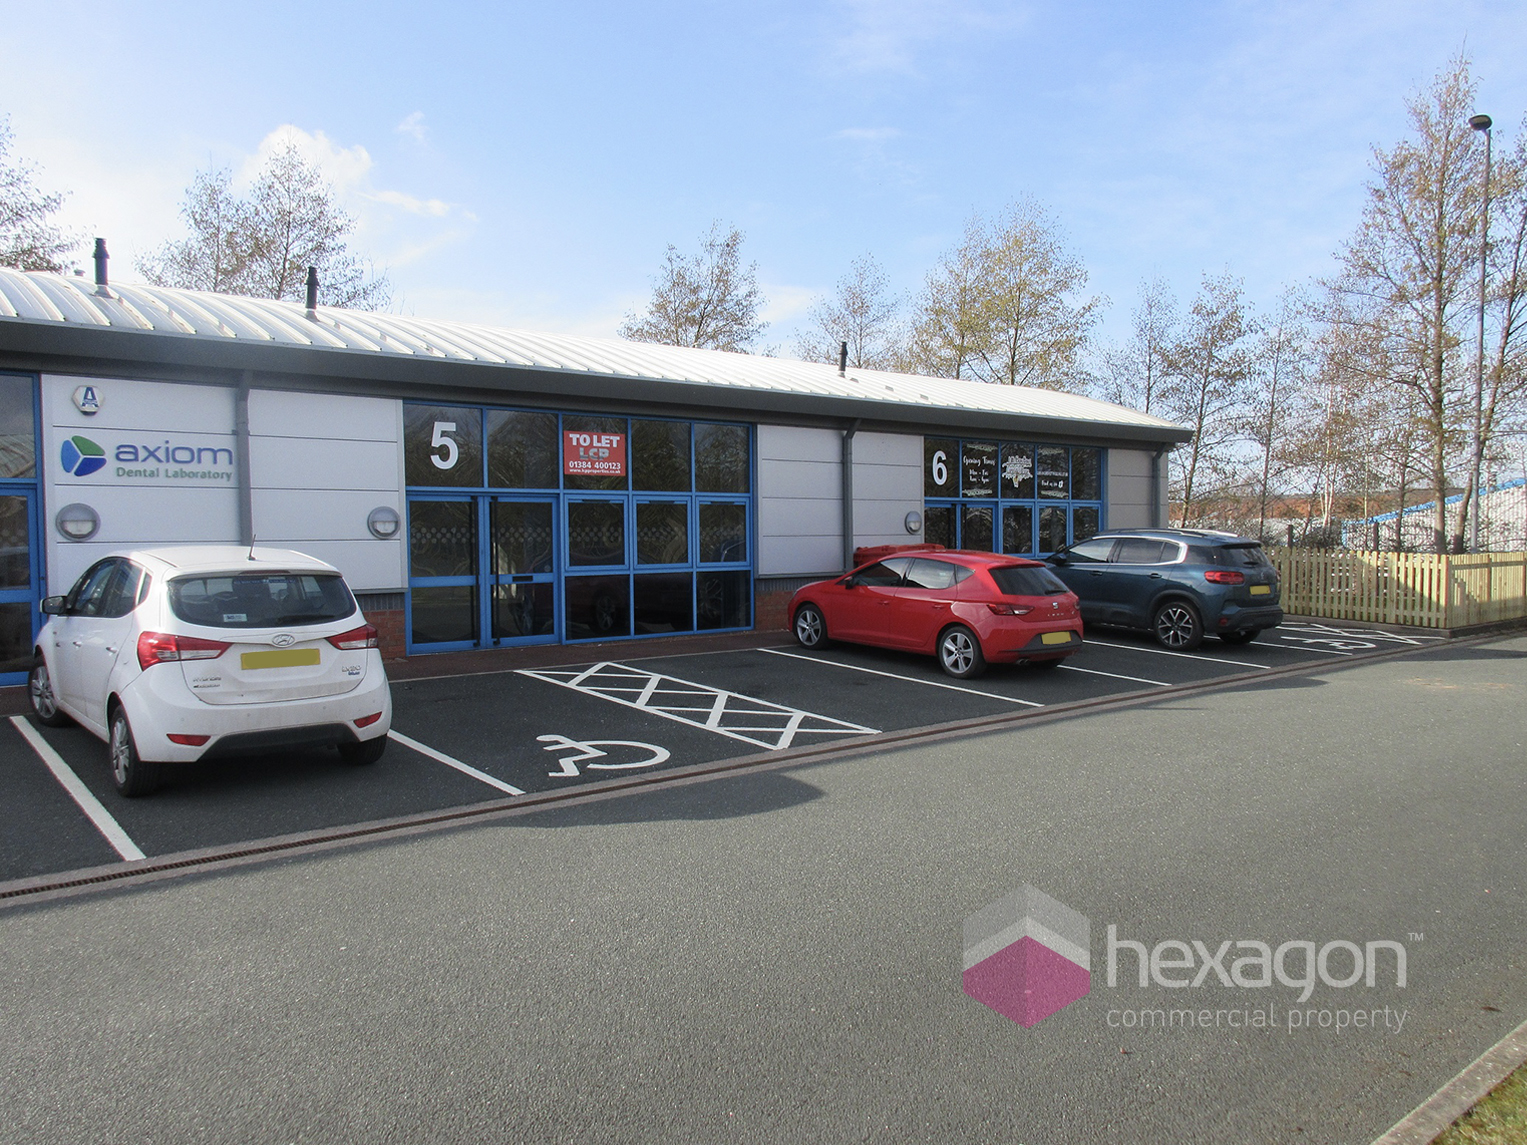 0 bed Office for rent in Kingswinford. From Hexagon Commercial Property